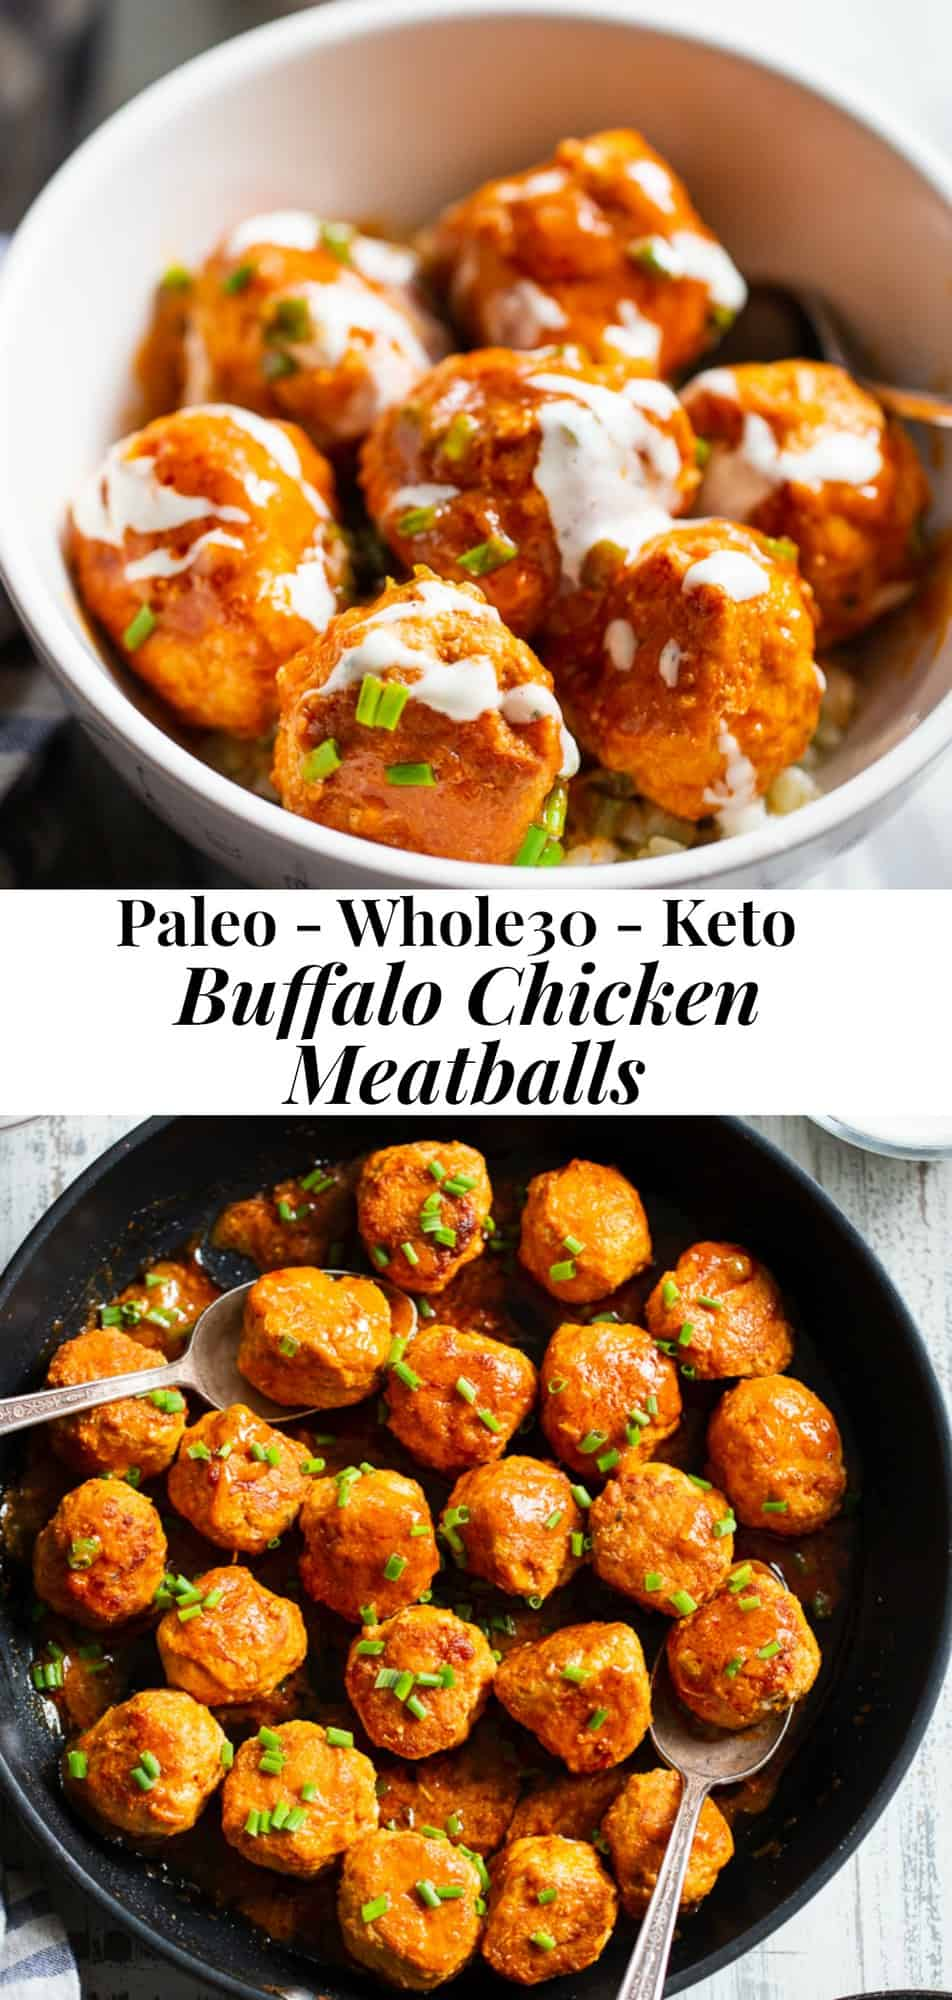 These buffalo chicken meatballs are savory, spicy and super easy to make!  Just one pot and 20 minutes are all you need for these tasty meatballs.  Drizzled with a homemade Whole30 Ranch, they're great as a weeknight dinner over cauliflower rice or alone as a quick appetizer. #paleo #whole30 #keto